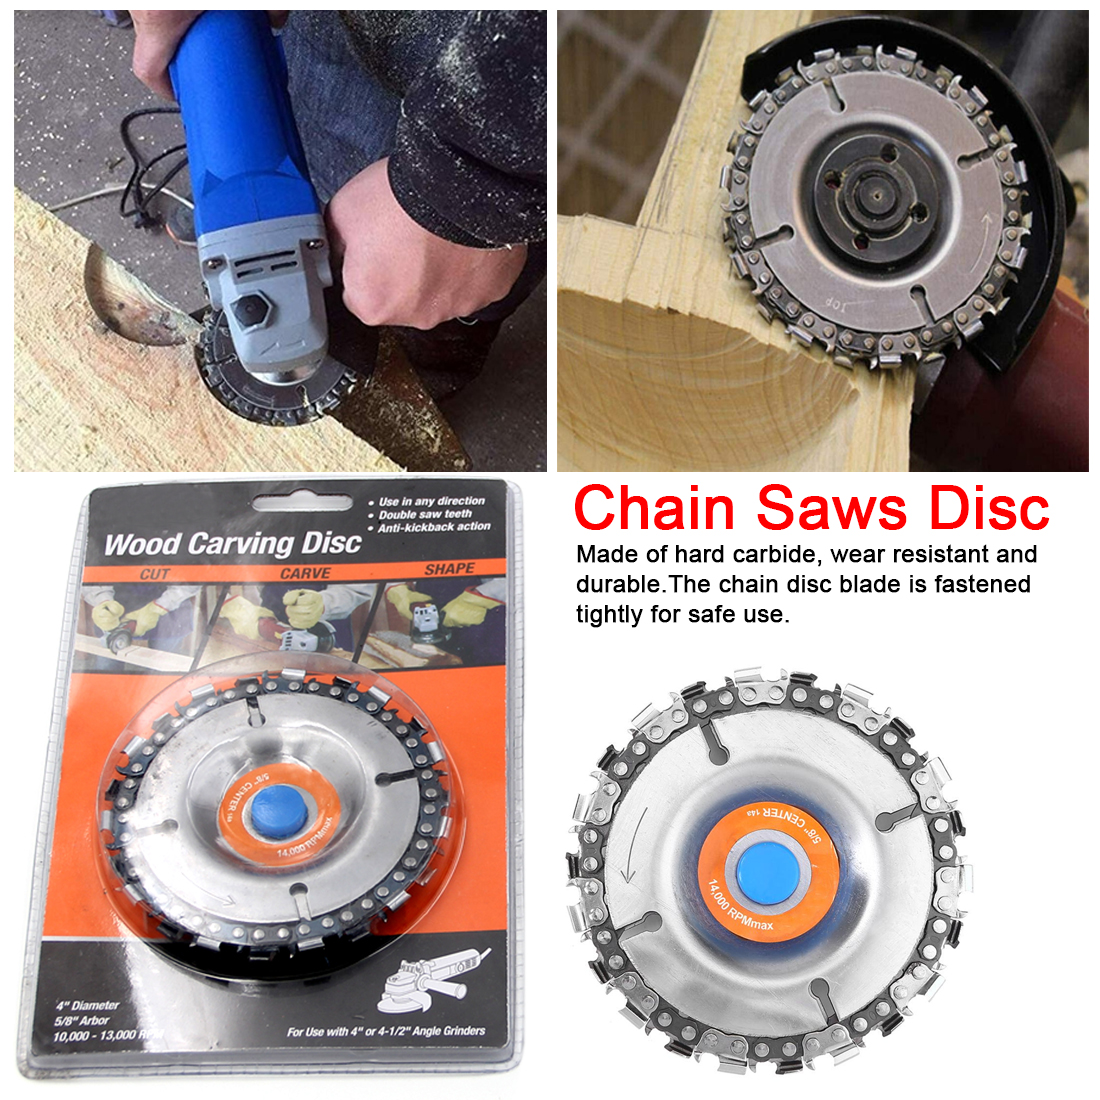 22 Teeth Grinder Chain Disc  5/8 Inch Arbor Wood Carving Disc Saw Blade Cutting Piece Wood Slotted Saw Blade 4 Inch